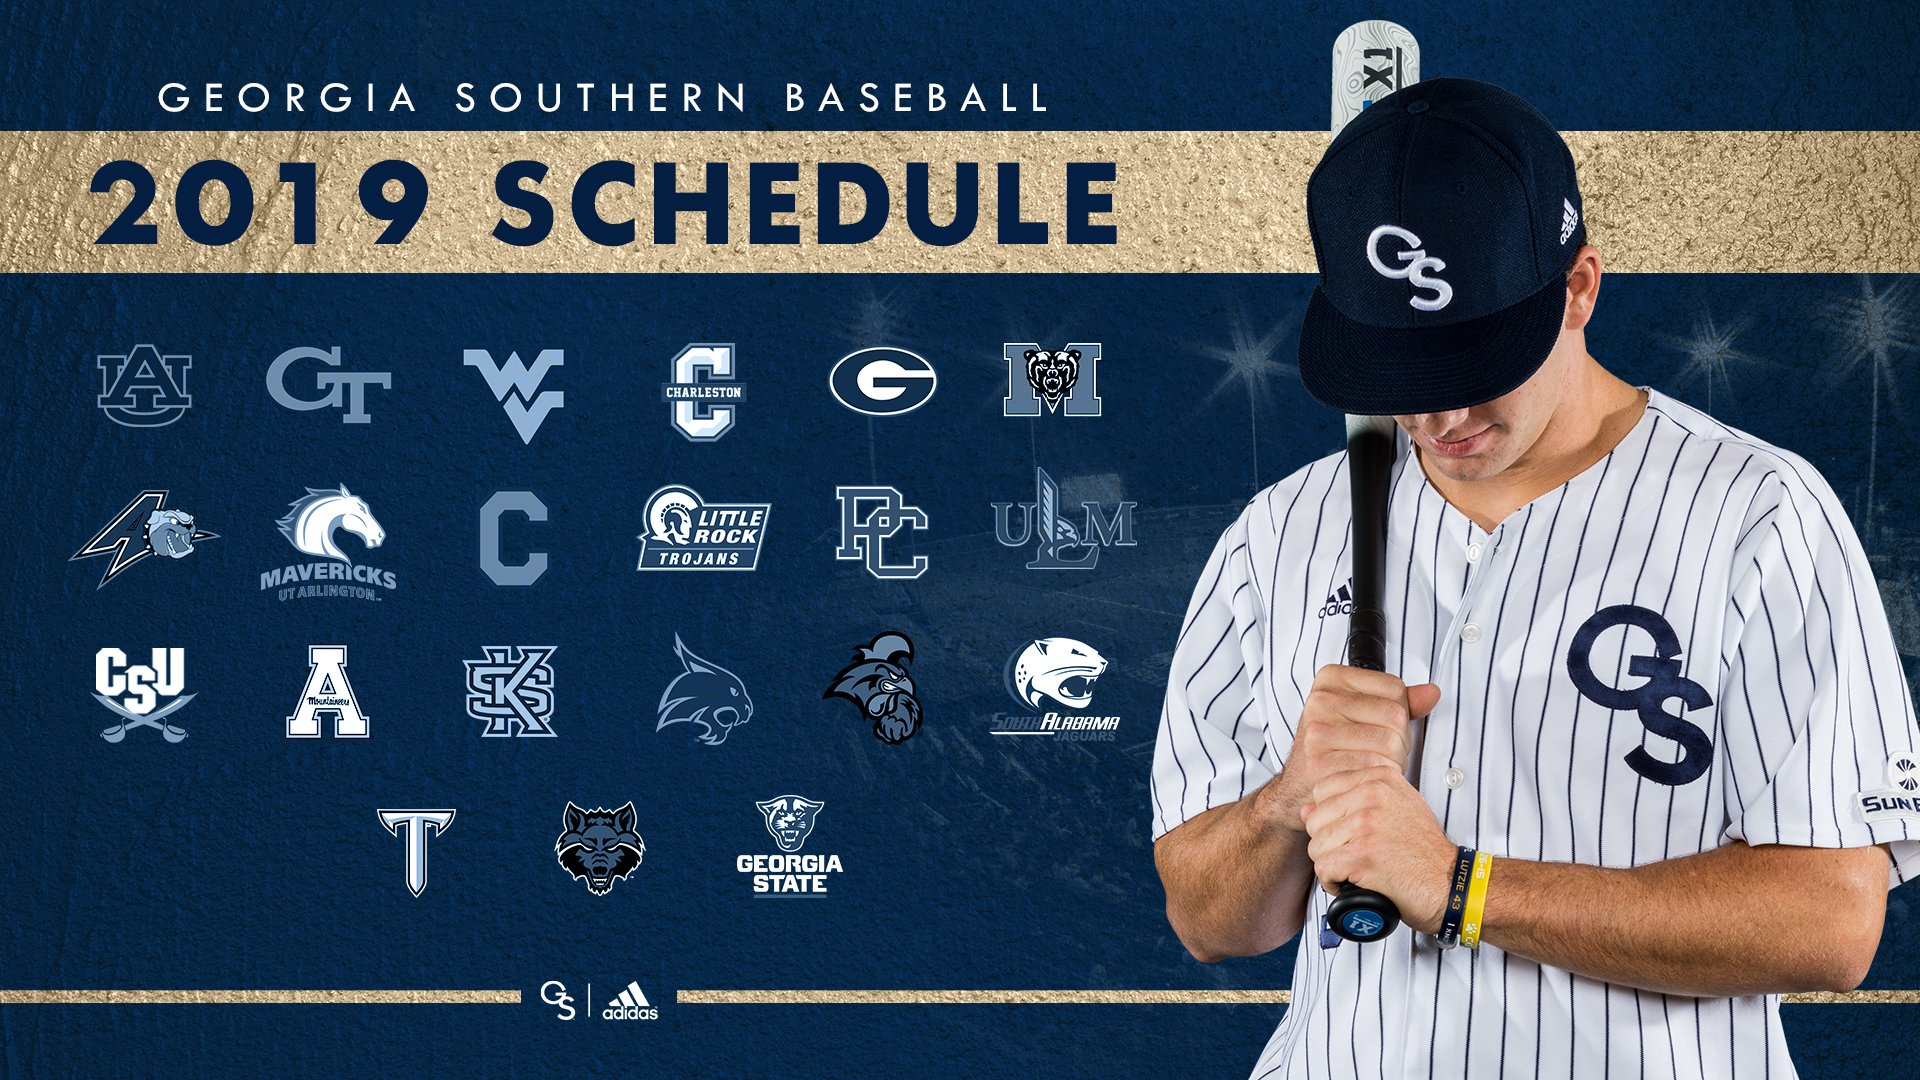 Eagle Baseball Announces 2019 Schedule - Georgia Southern Calendar 2019 Gsu